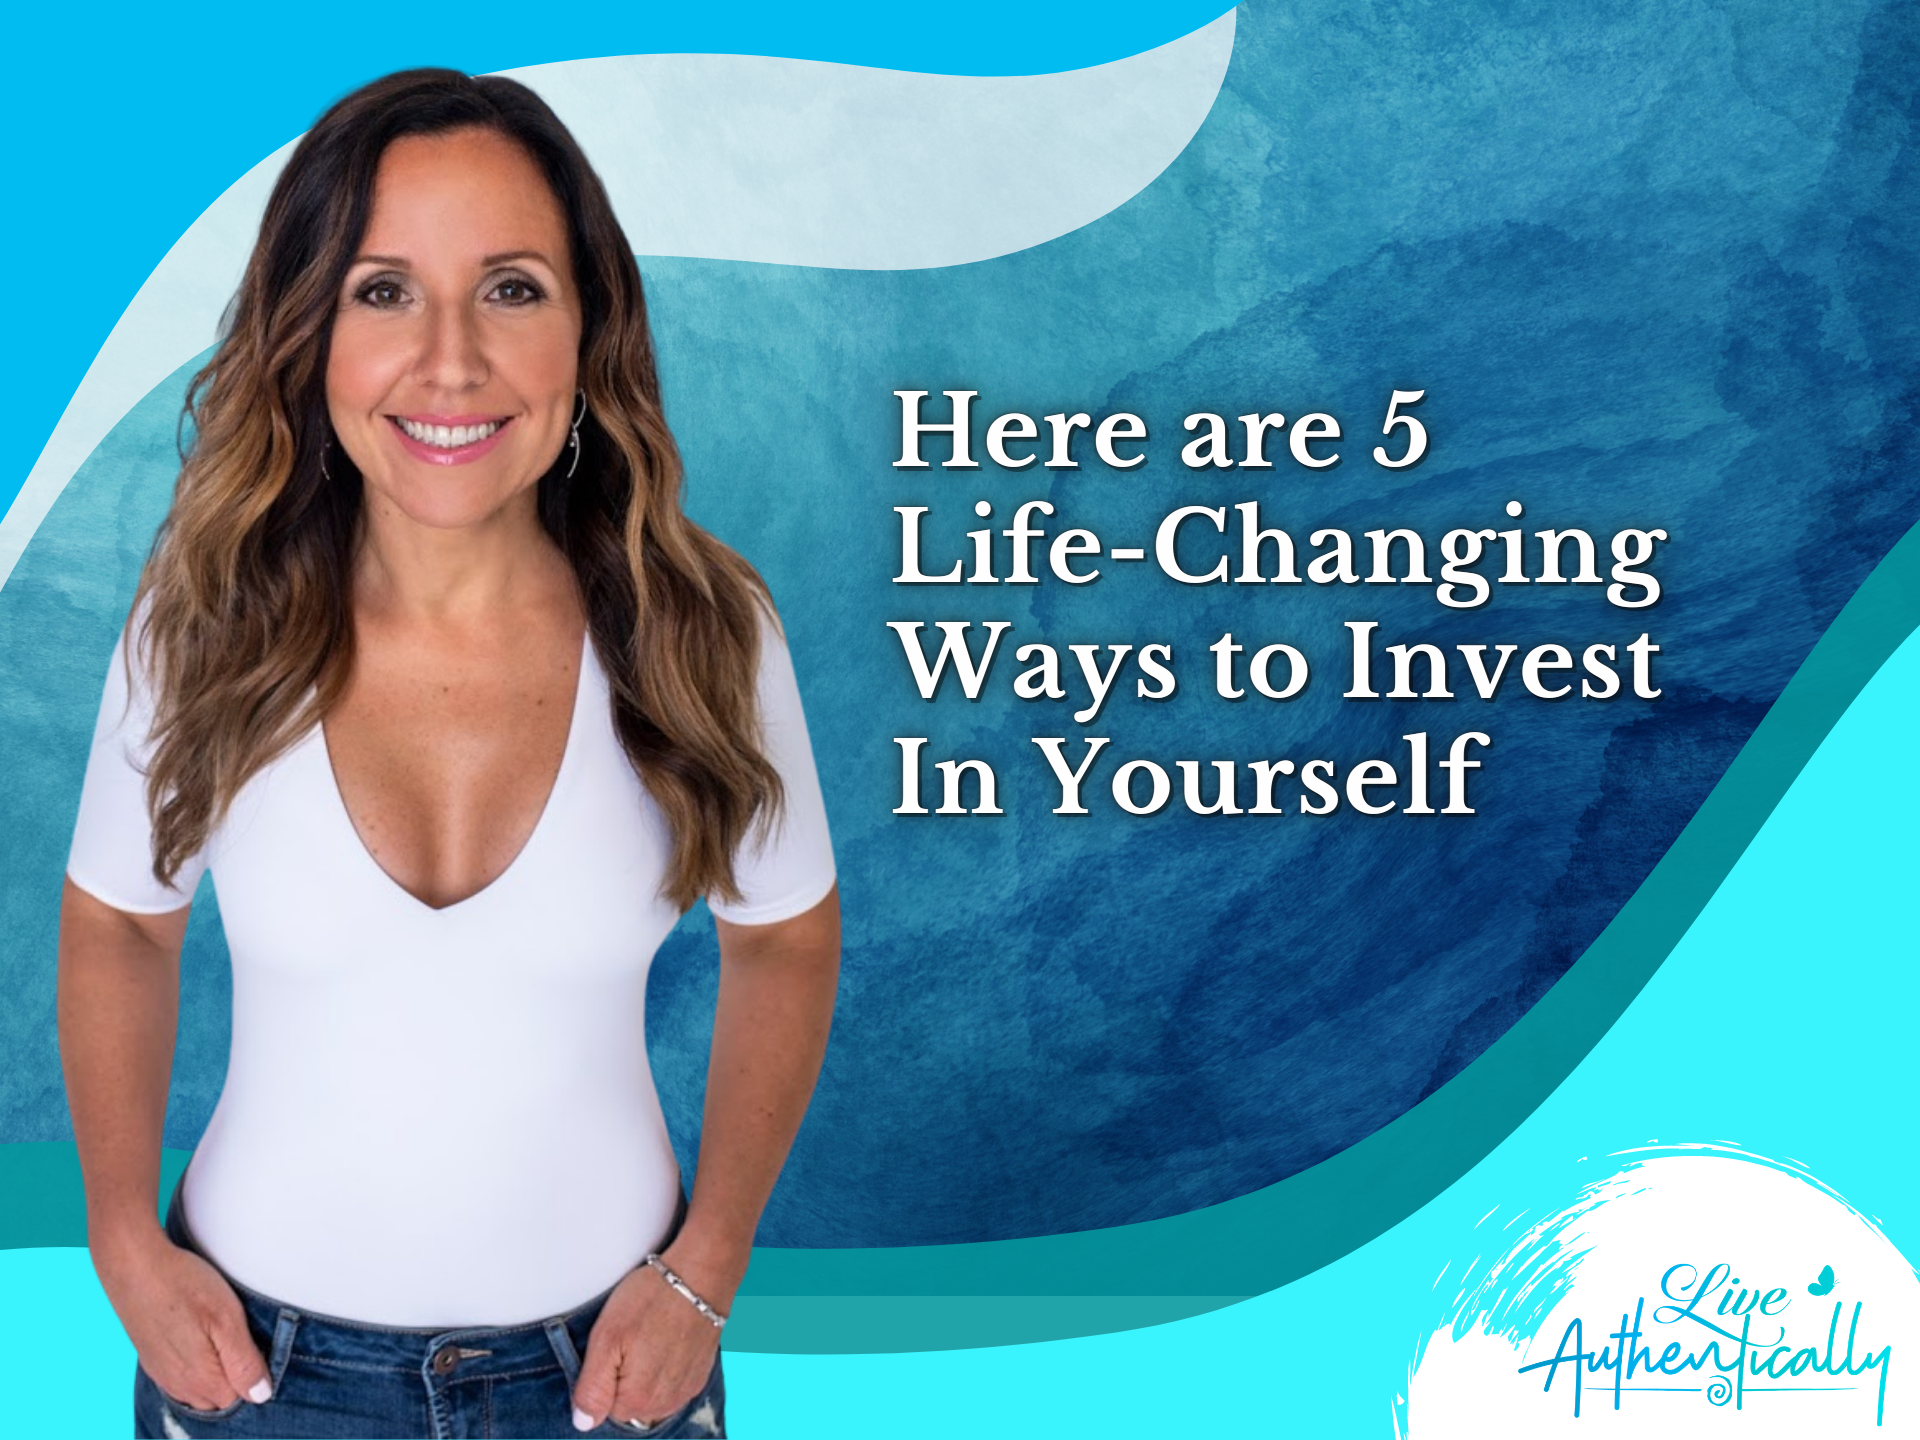 5 Life-Changing Ways to Invest In Yourself